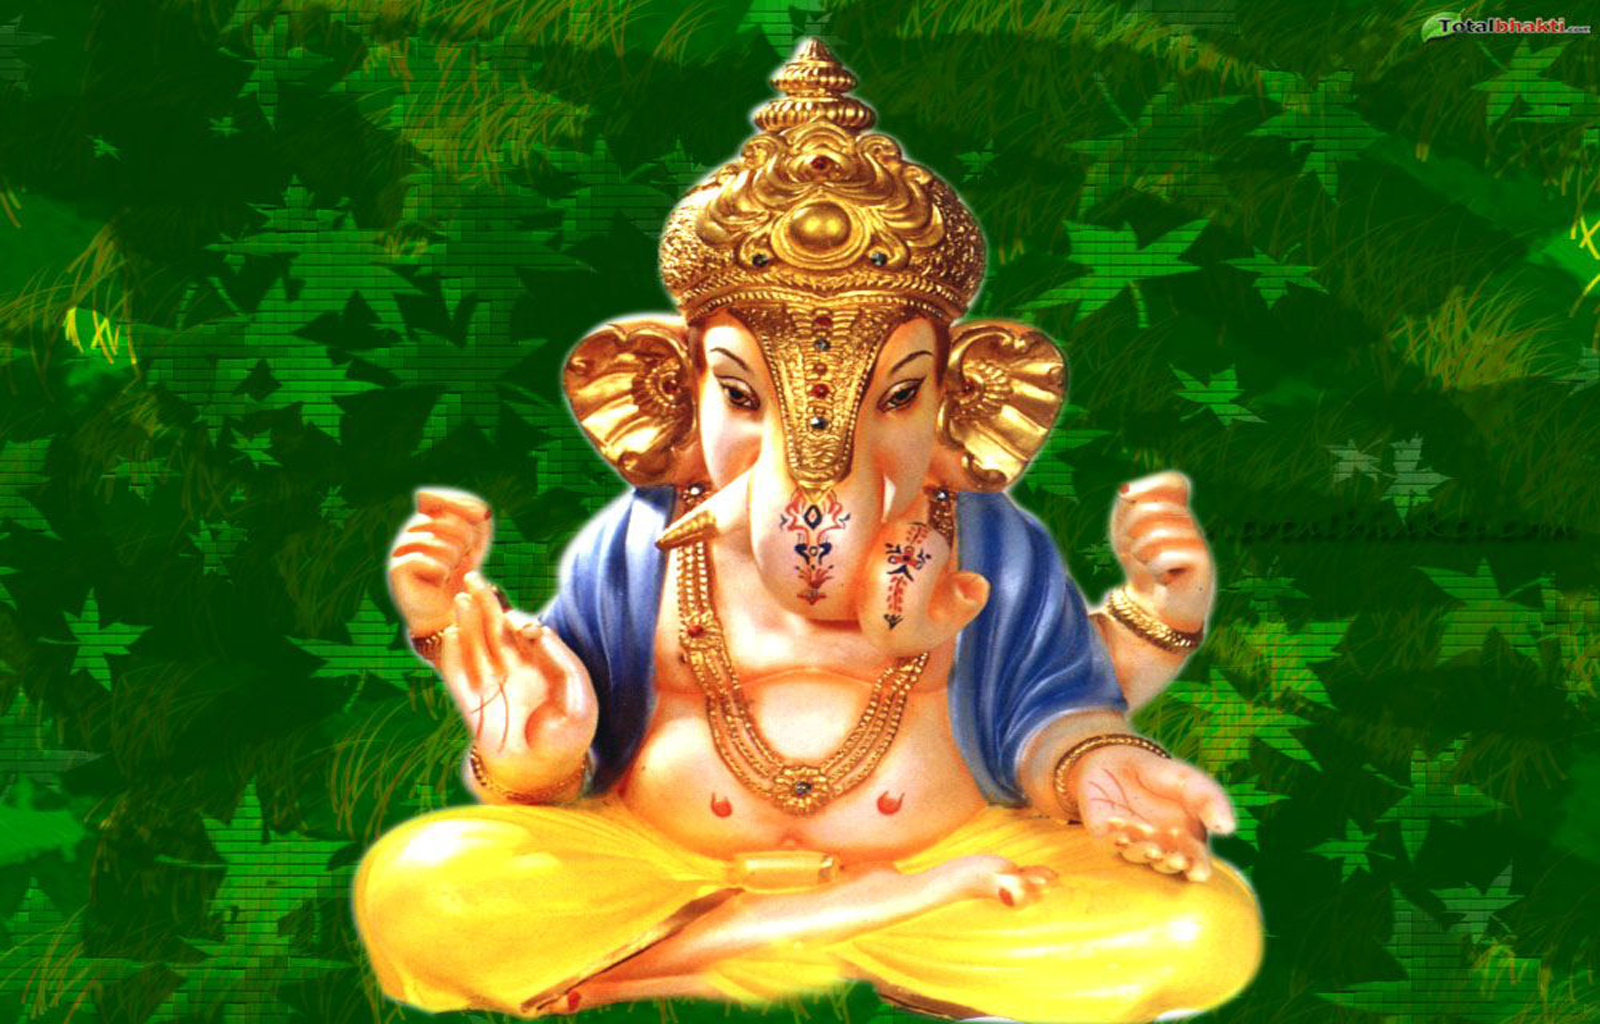 god ganesh 3d wallpaper free download